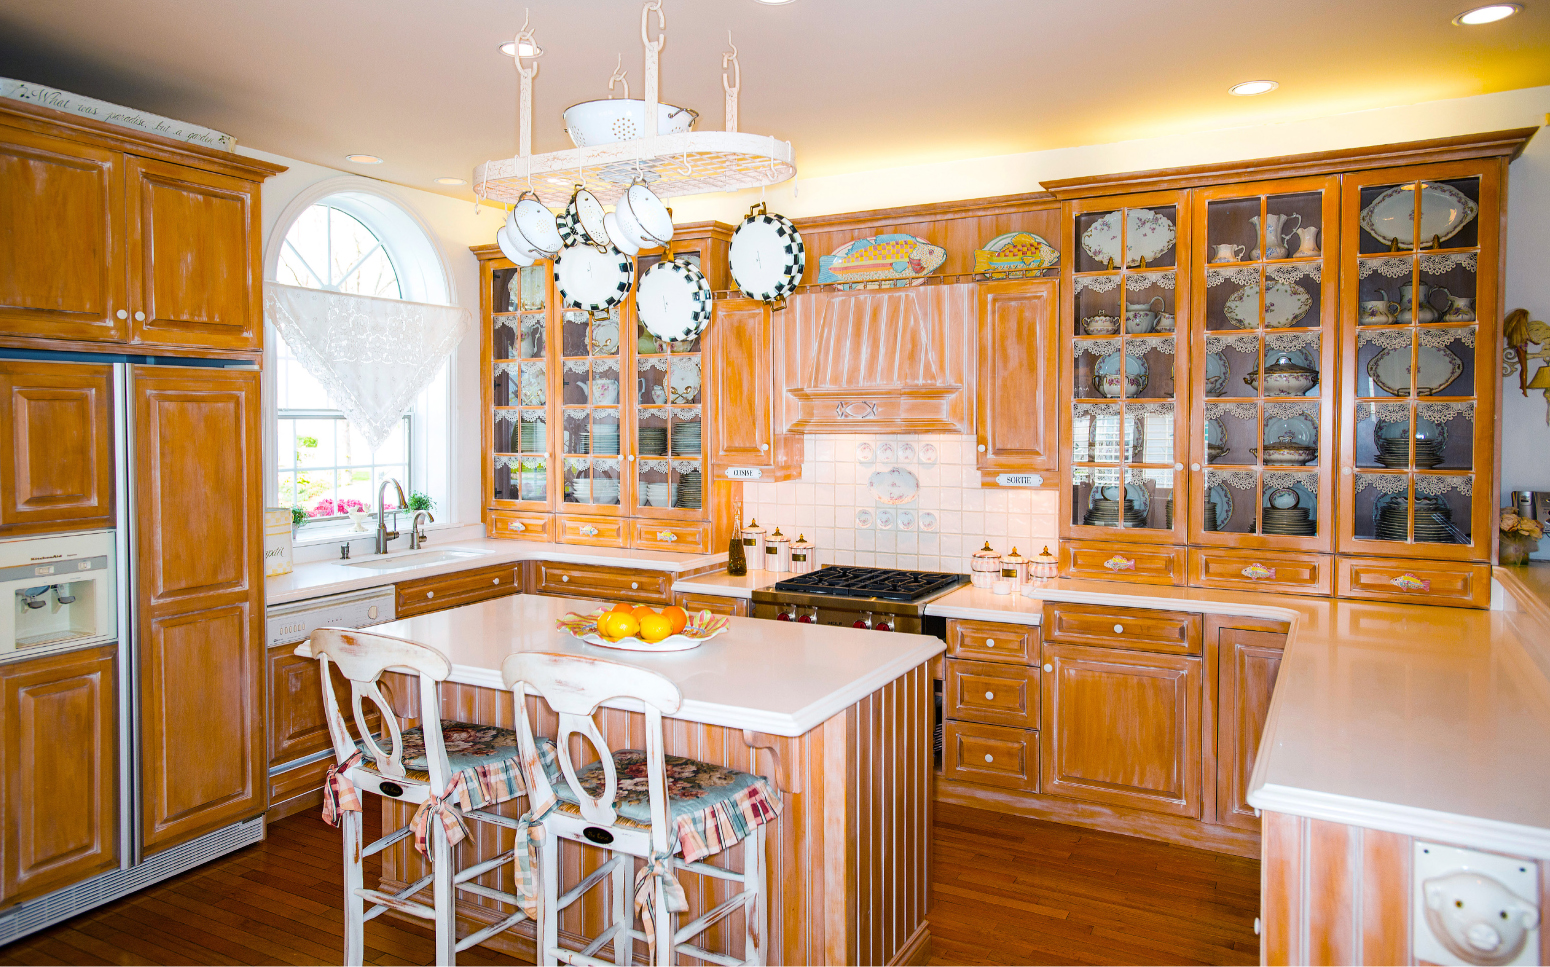 The open kitchen cabinets provide an ideal place to frame Kathy's beloved china collection